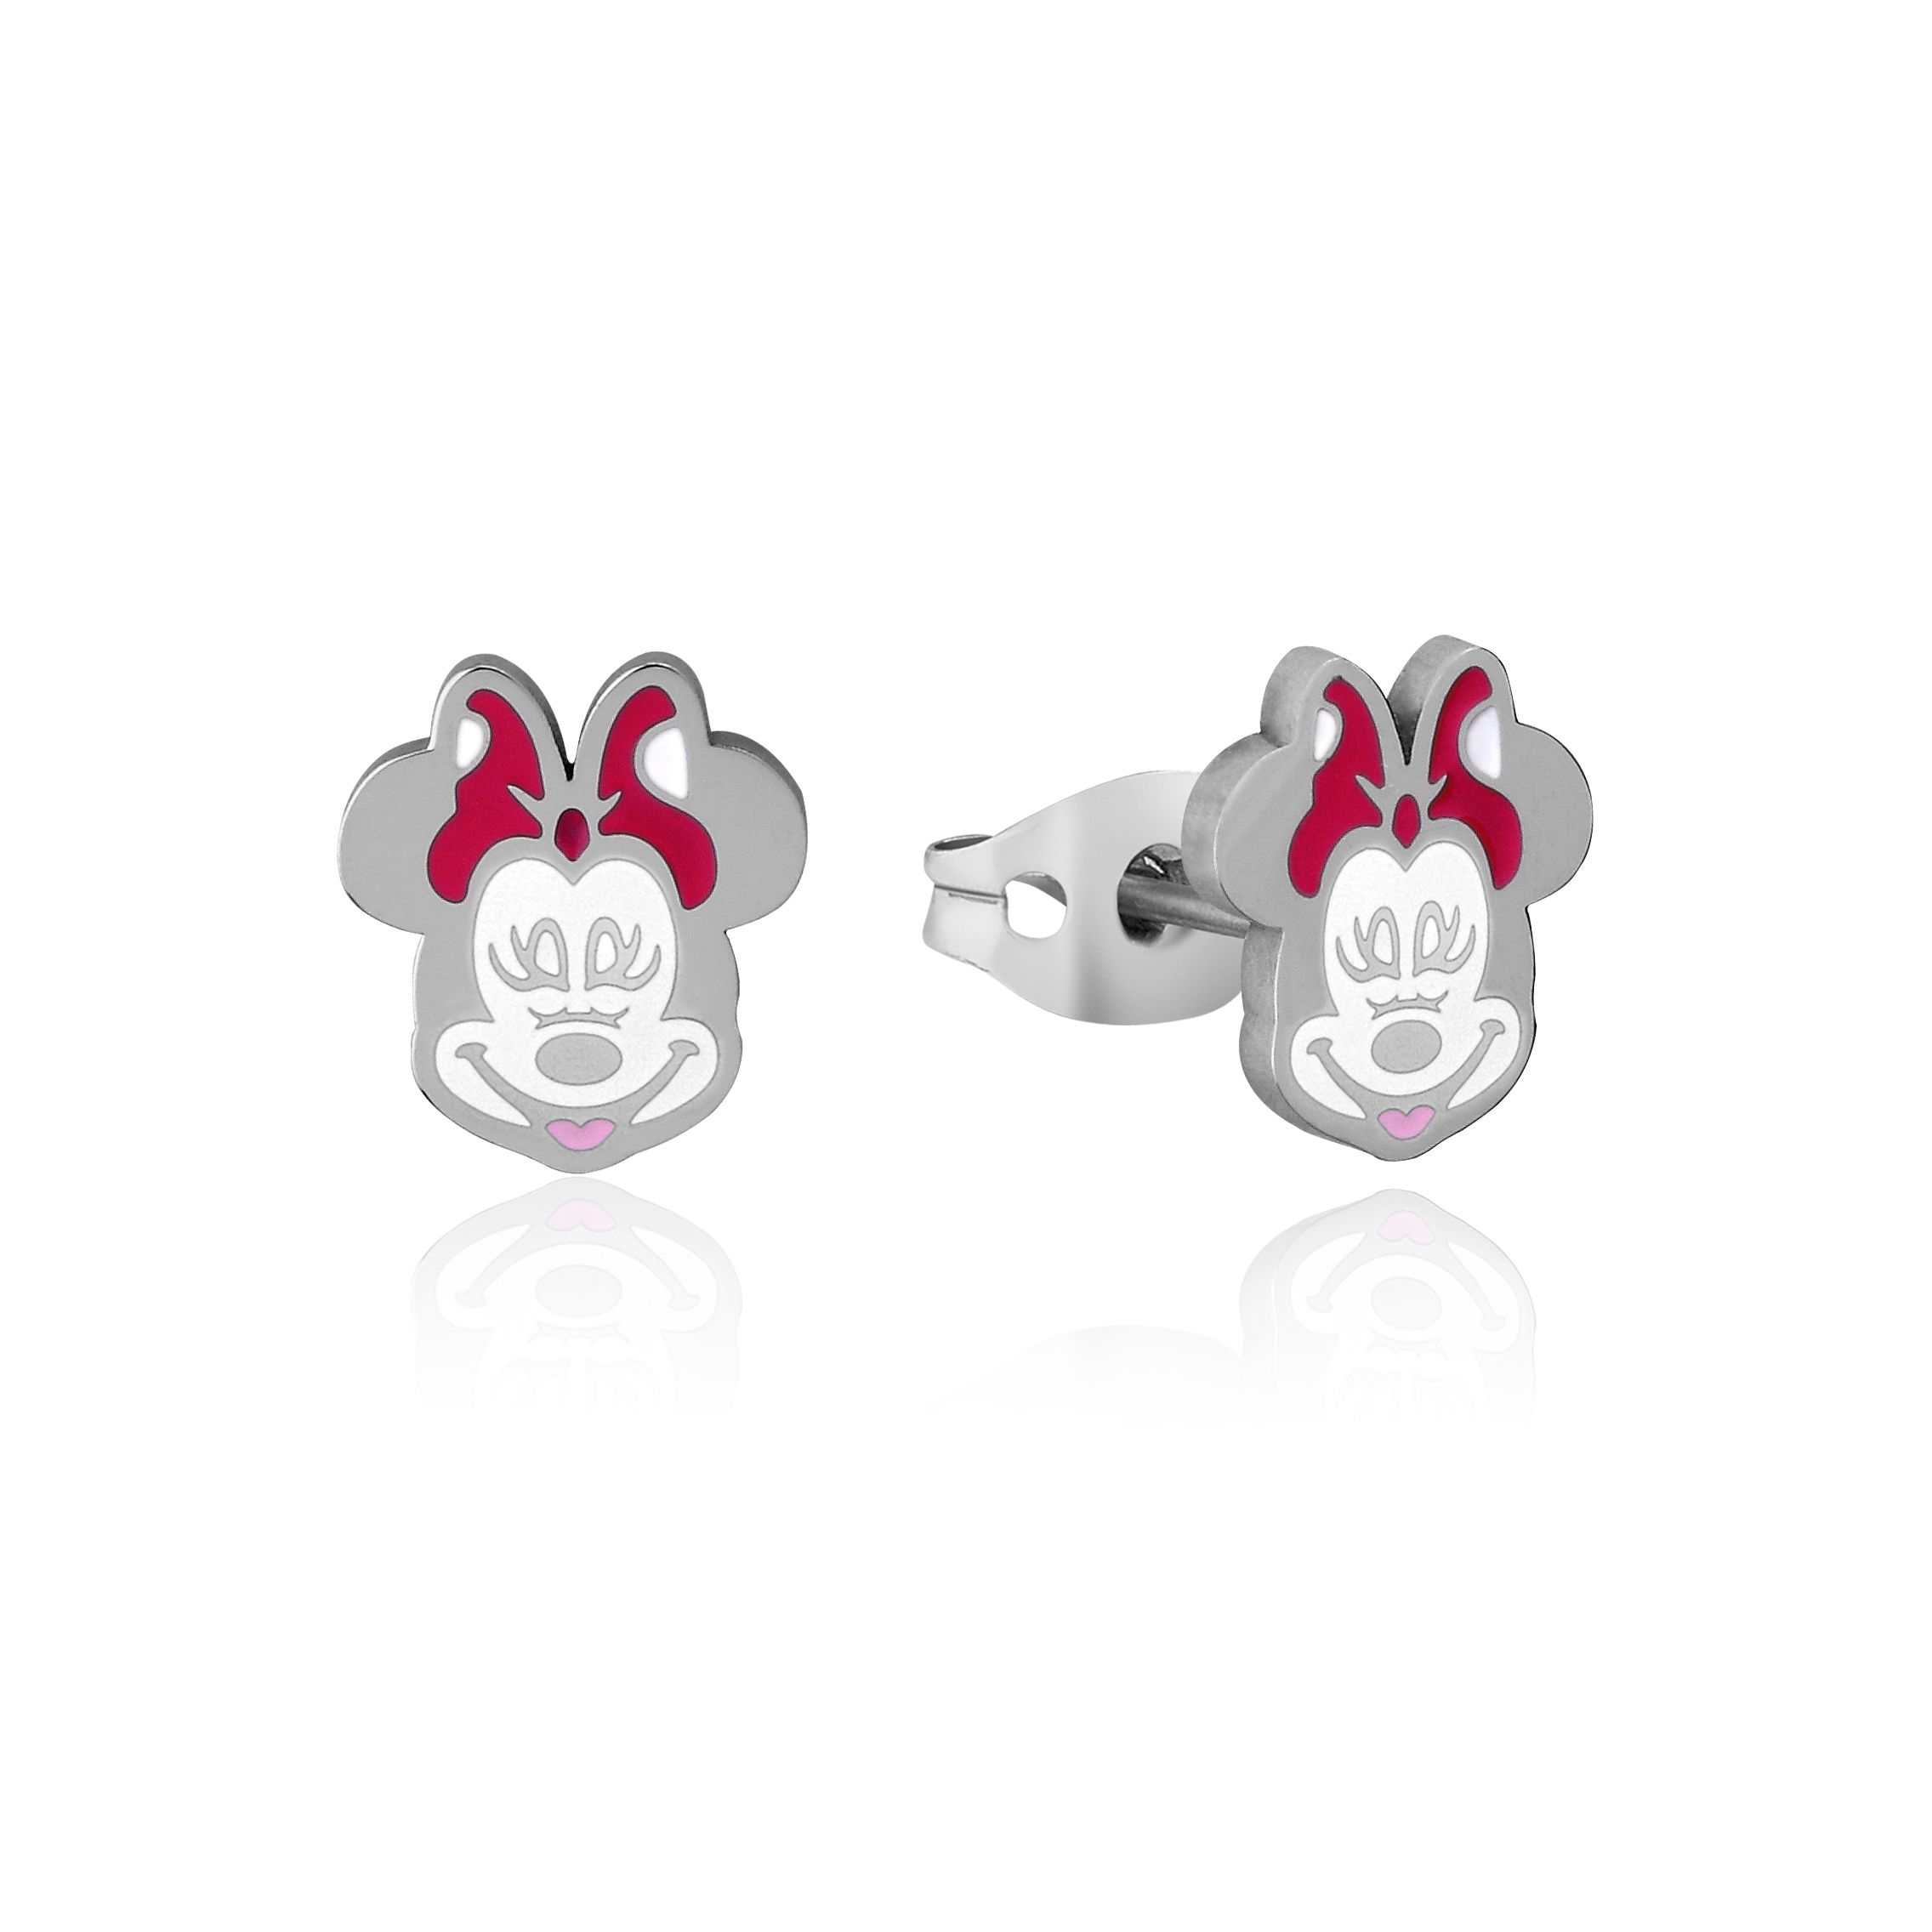 DISNEY Stainless Steel 11mm Animated Minnie Mouse Stud Earrings